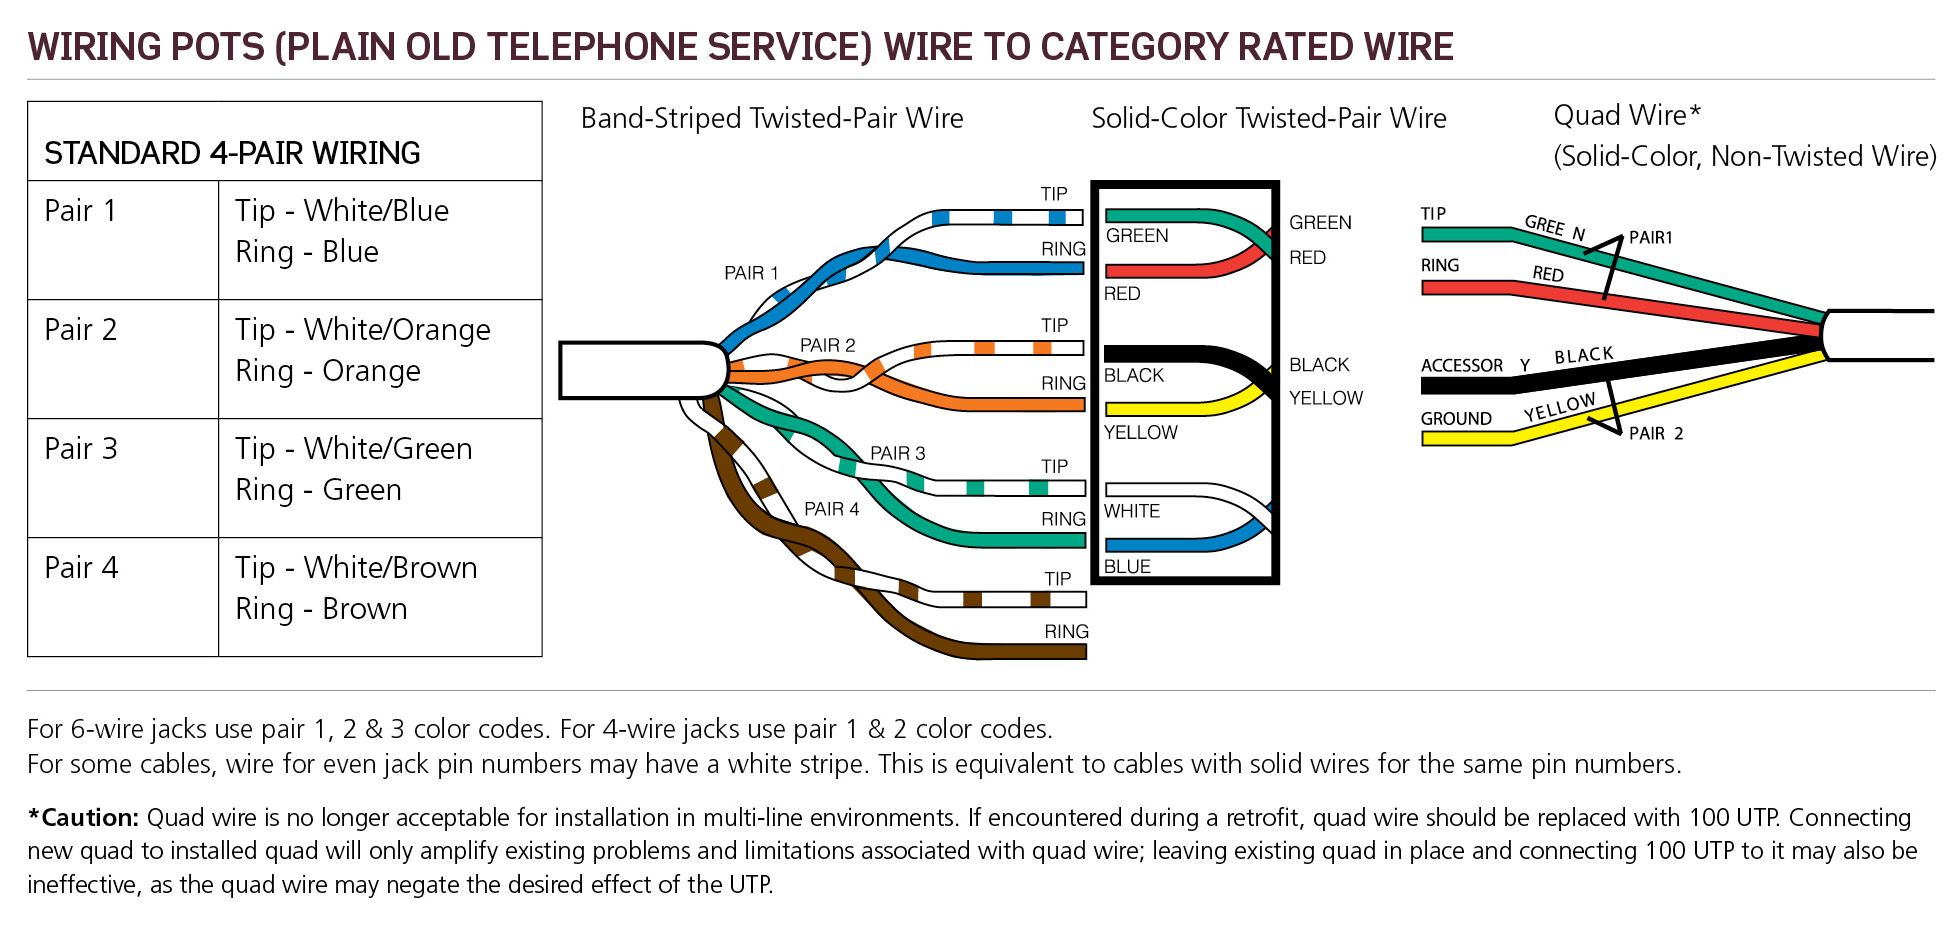 medium resolution of pots plain old telephone service wiring leviton made easy blog fender telecaster wiring pots wiring diagram